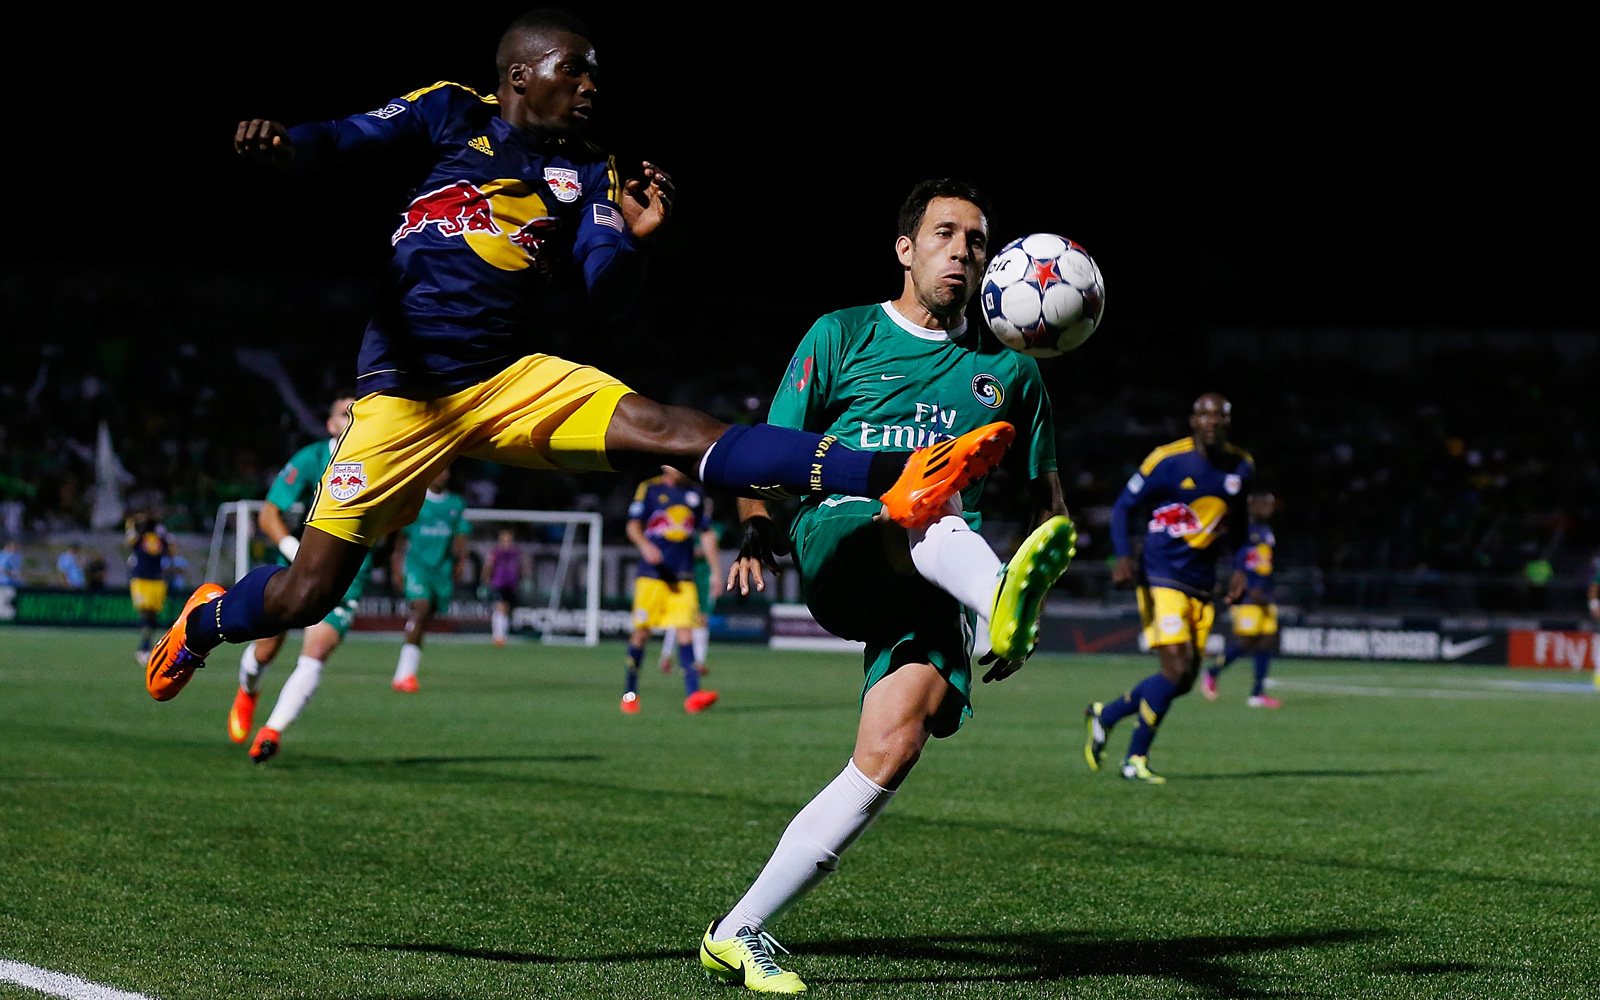 Ambroise Oyongo goes airborn in the New York Red Bulls' 2014 U.S. Open Cup match against the New York Cosmos.